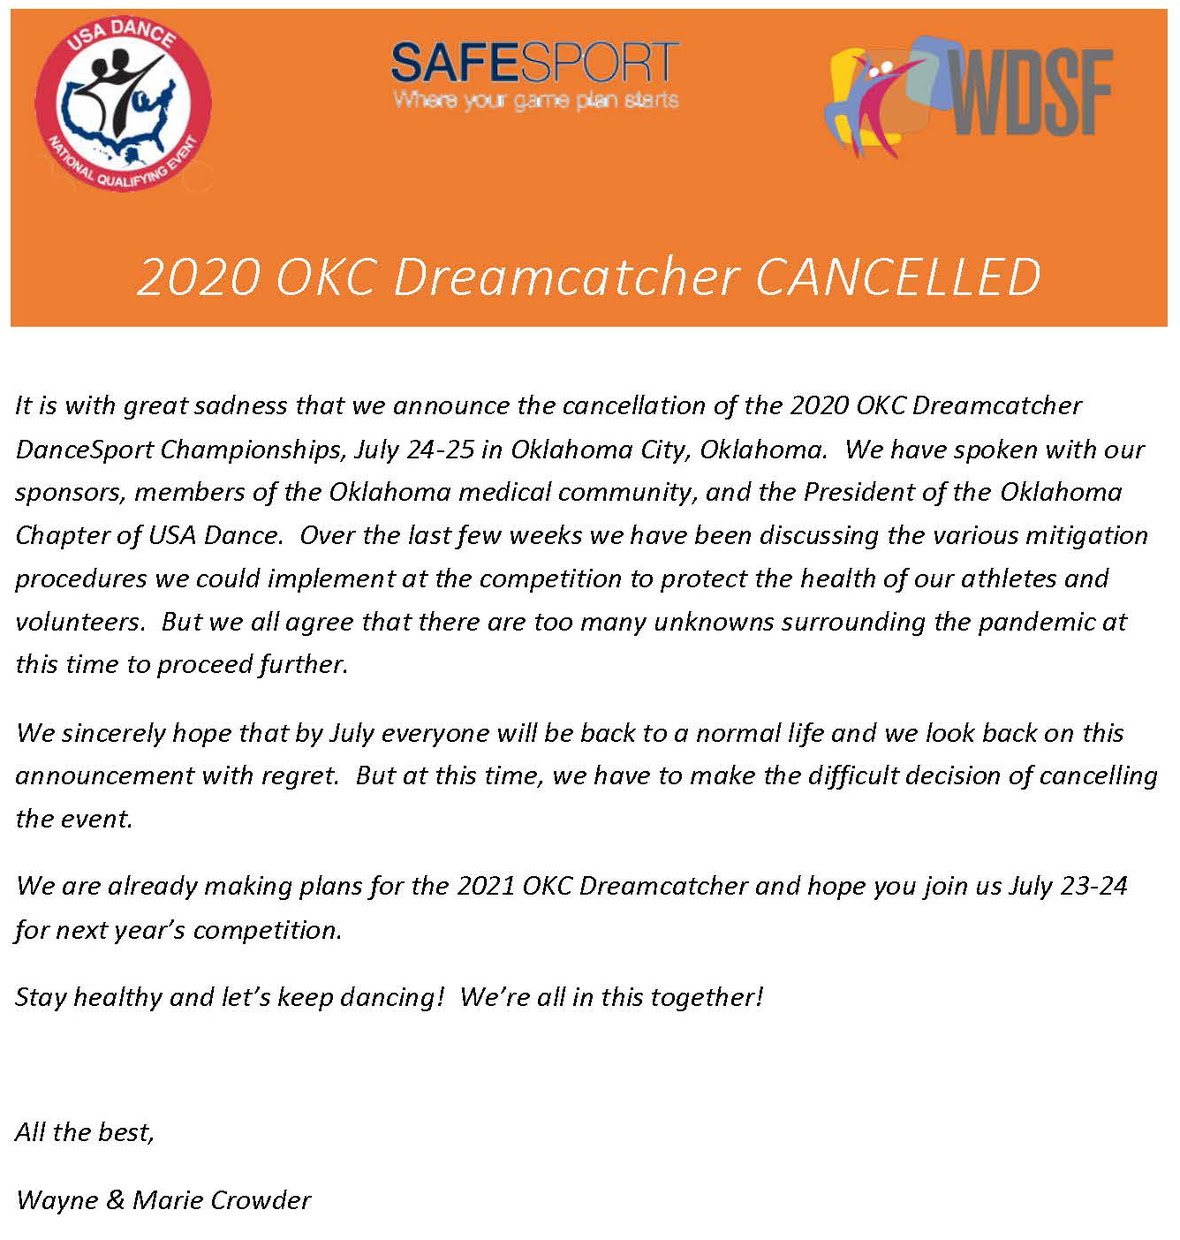 2020 OKC Dreamcatcher CANCELLED